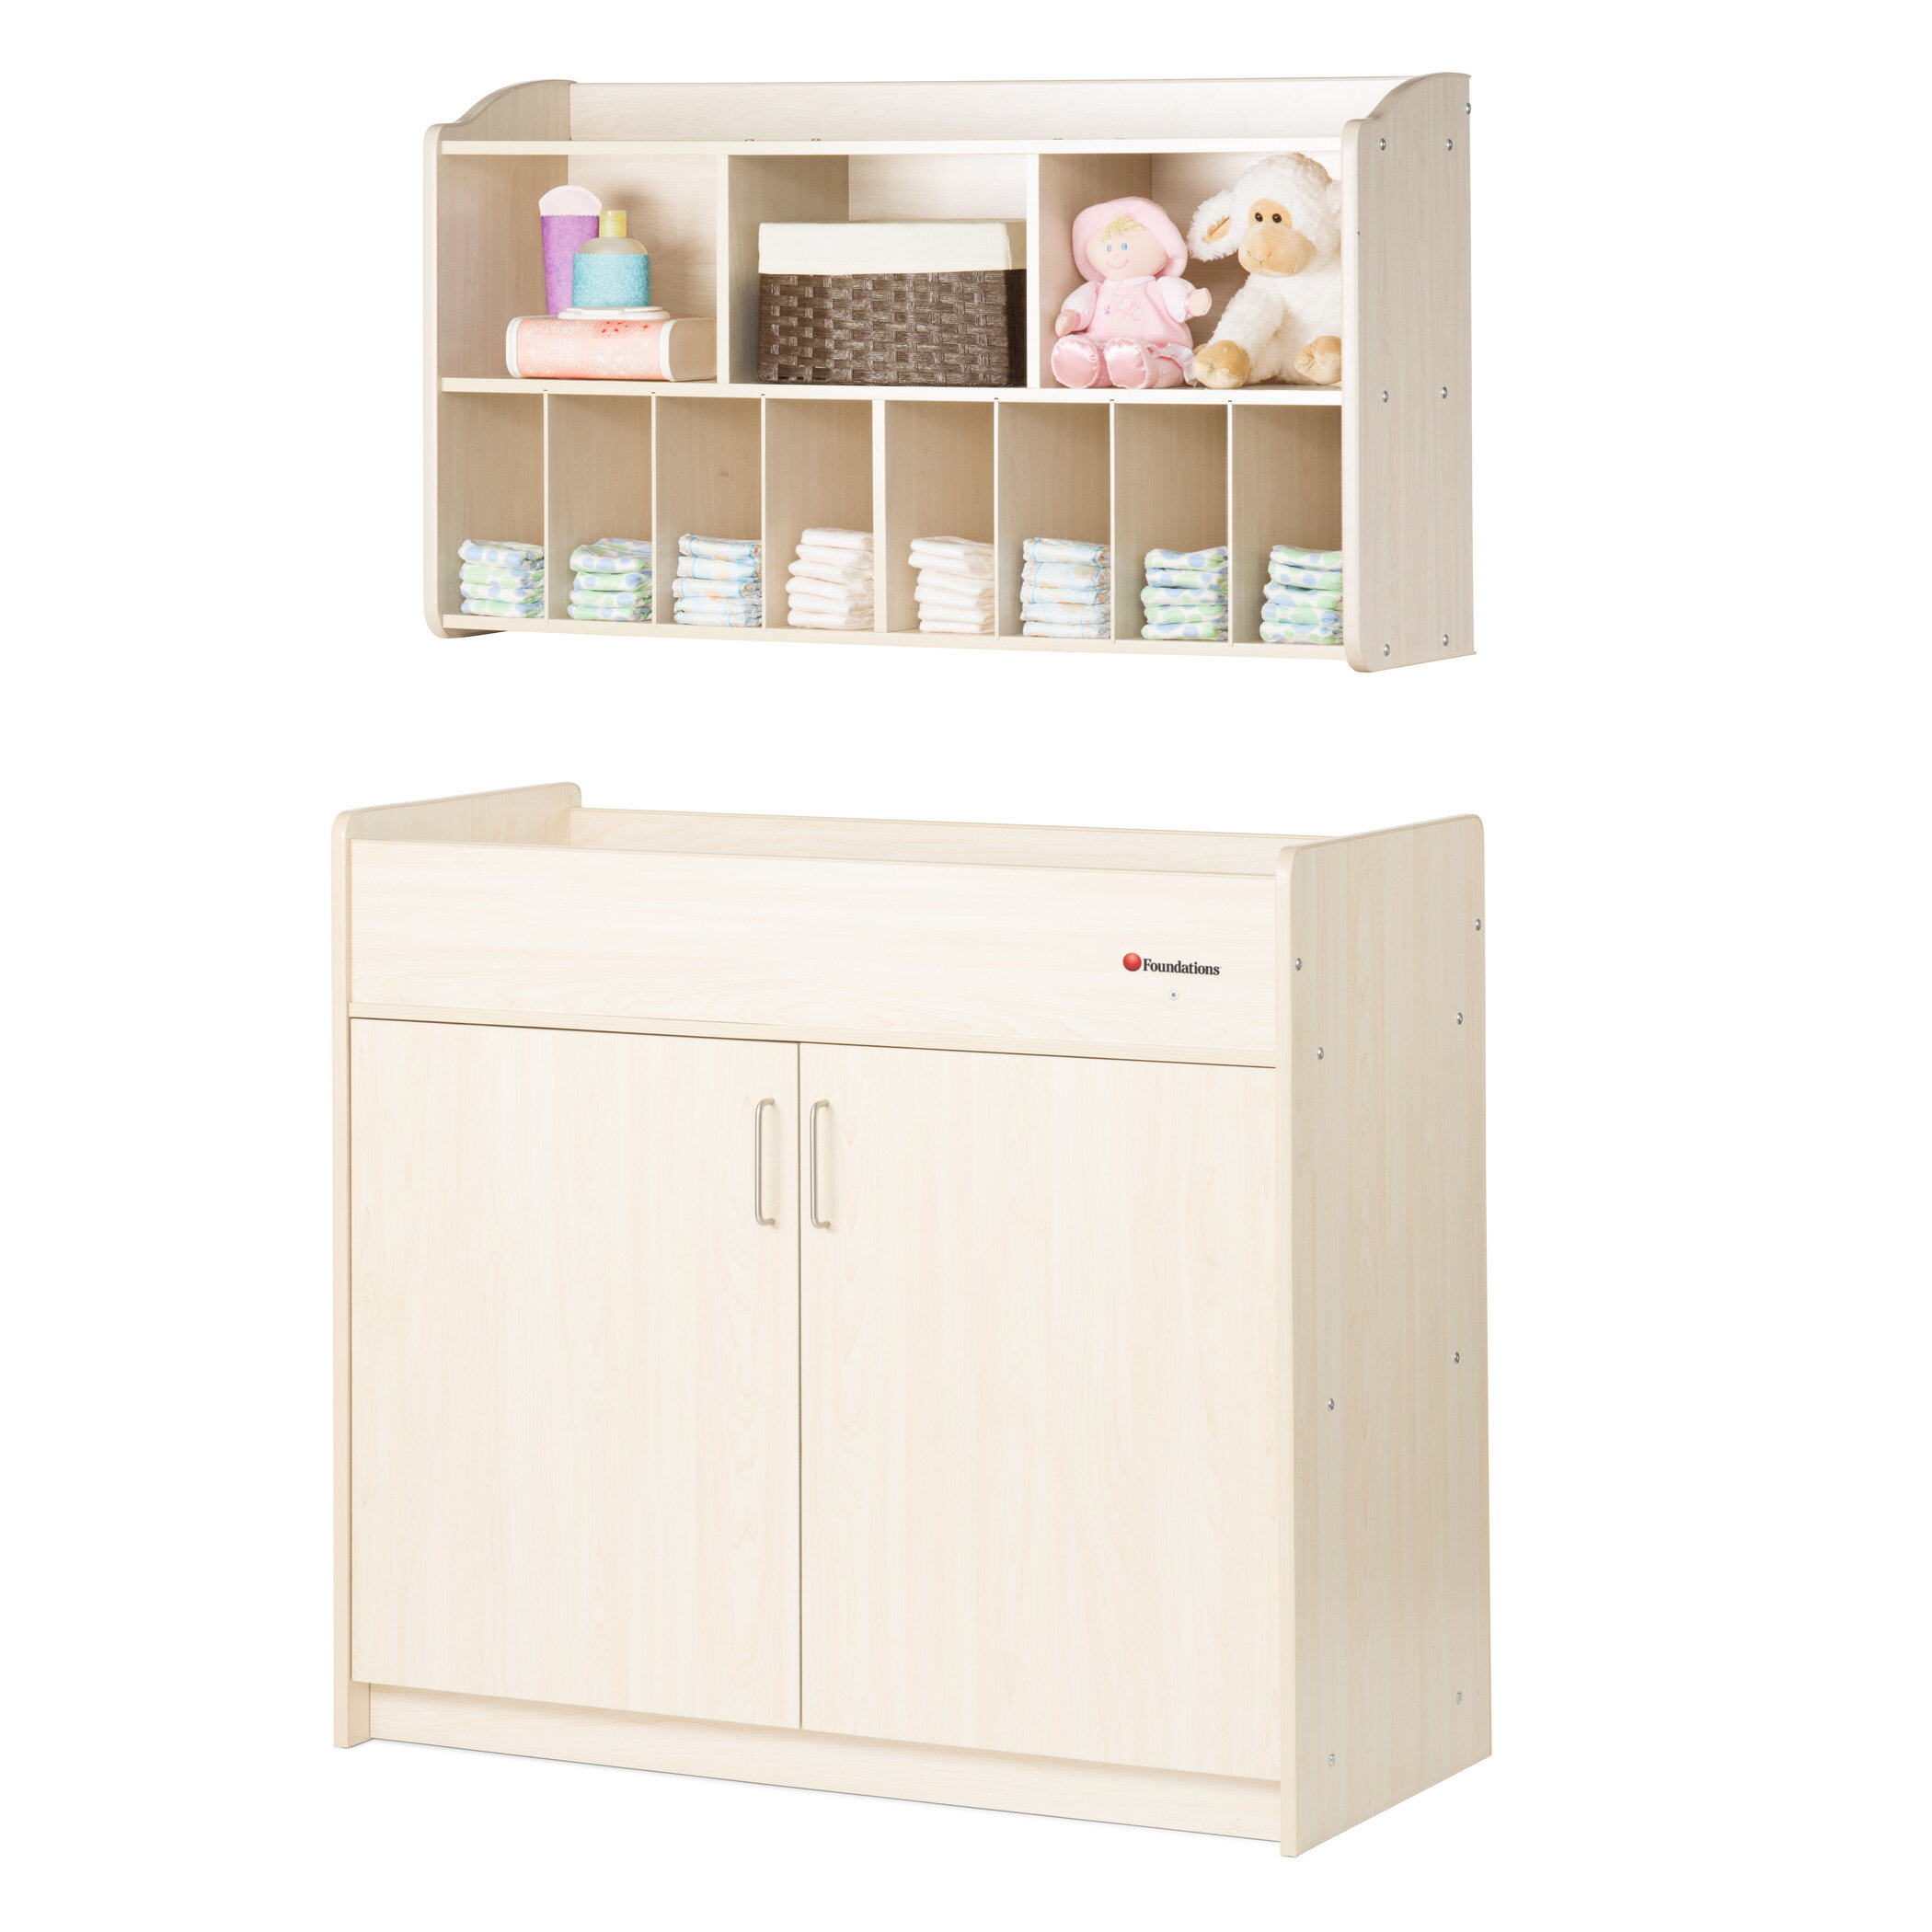 1c9361443f55 Foundations SafetyCraft 2 Piece Changing Table Set | Wayfair